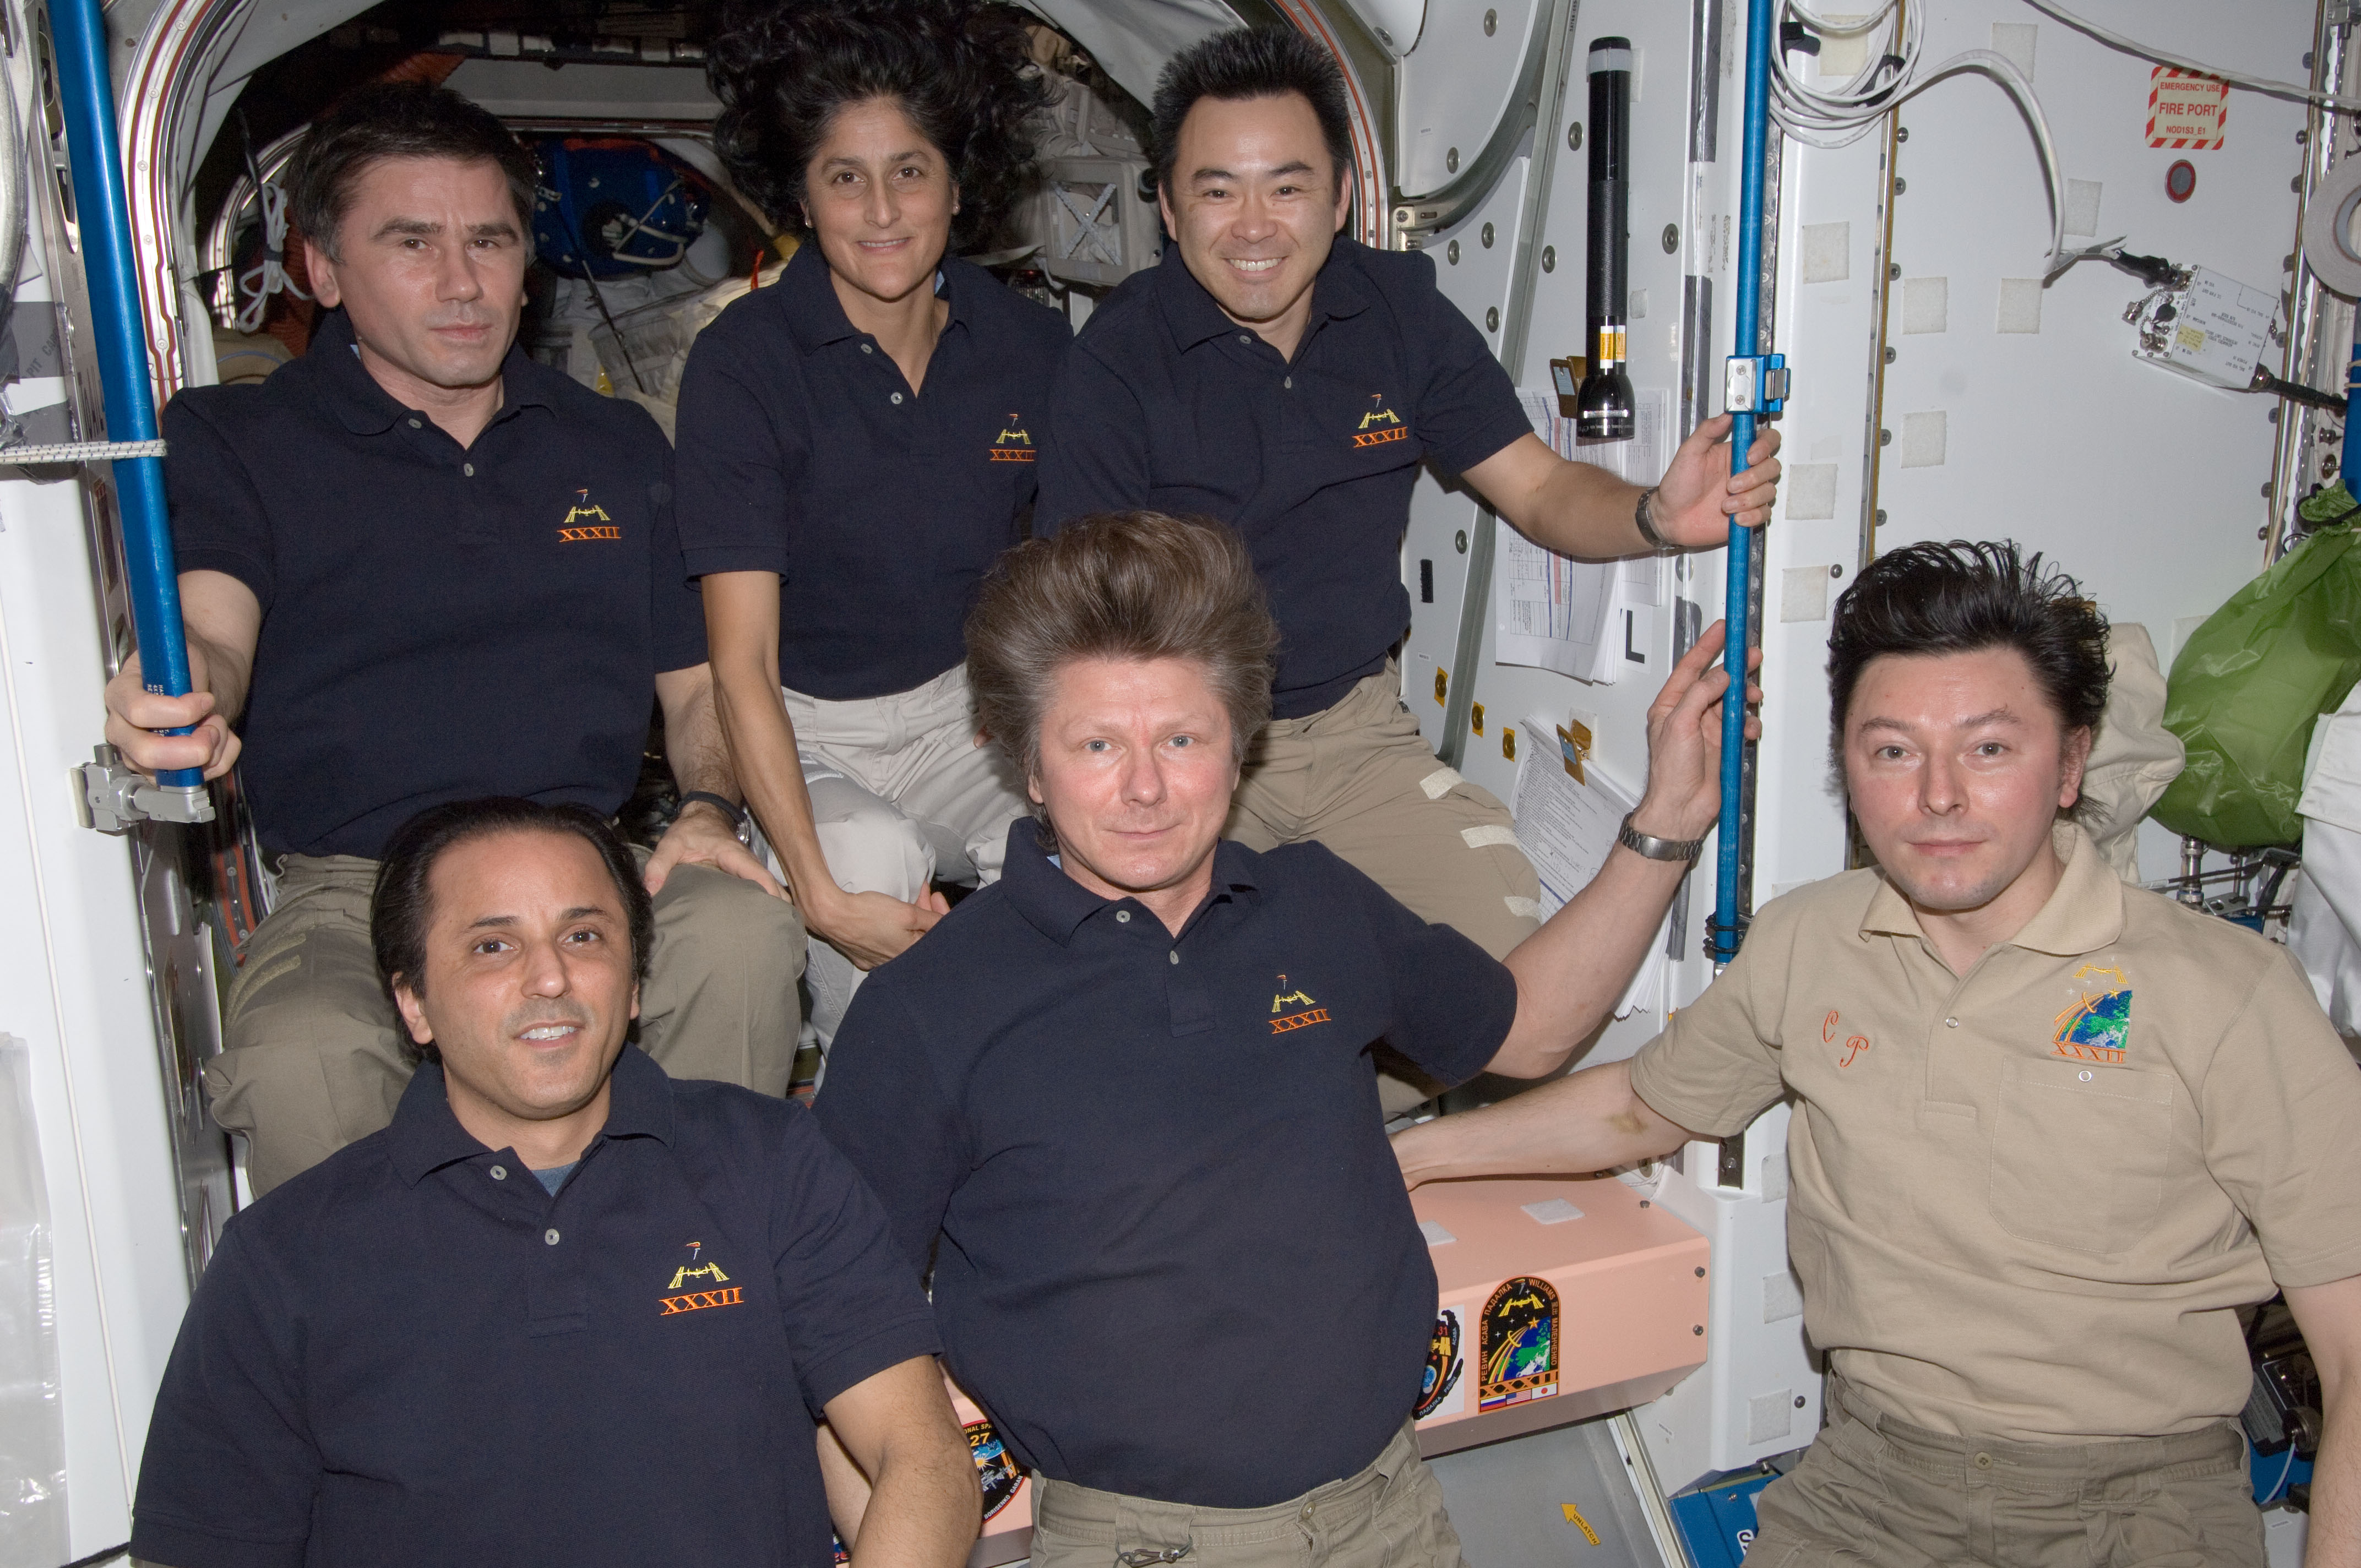 Expedition Crew Poses Following Changing-of-Command Ceremony